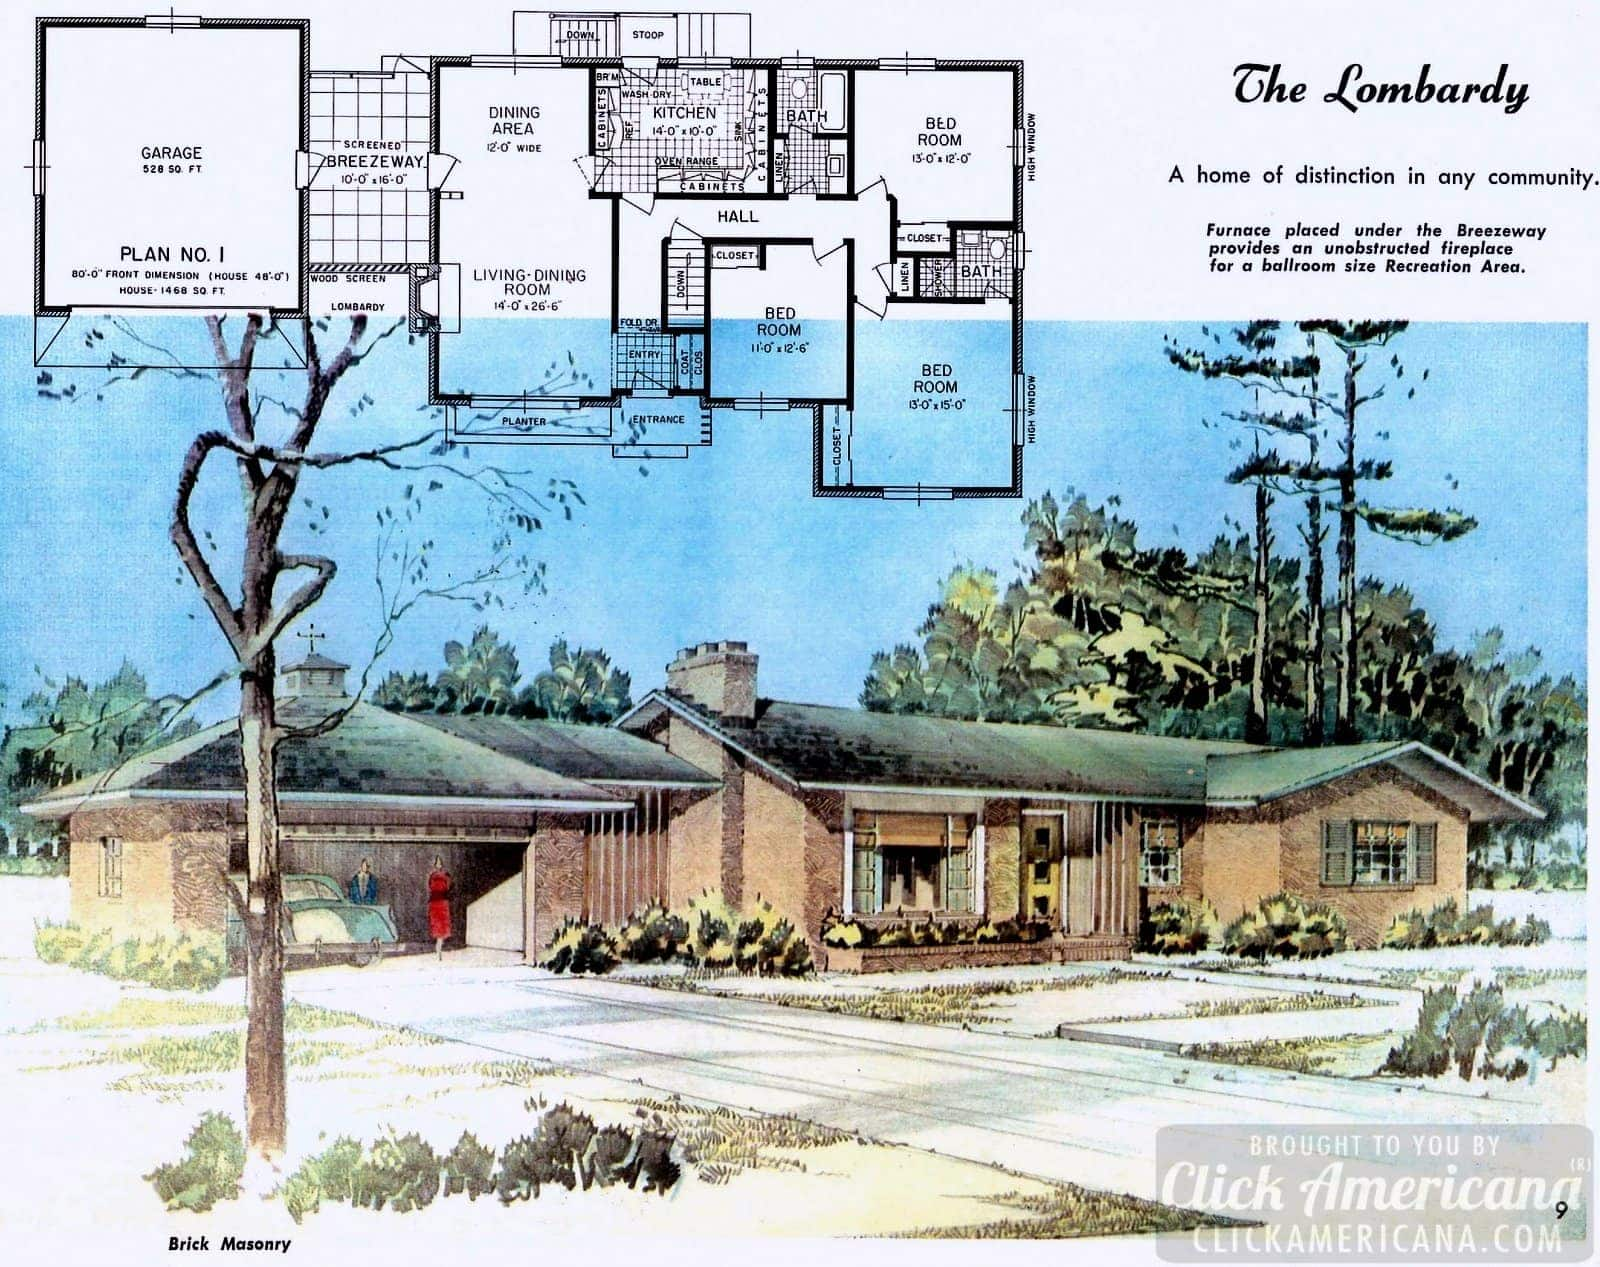 The Lombardy: House design plans from the '50s